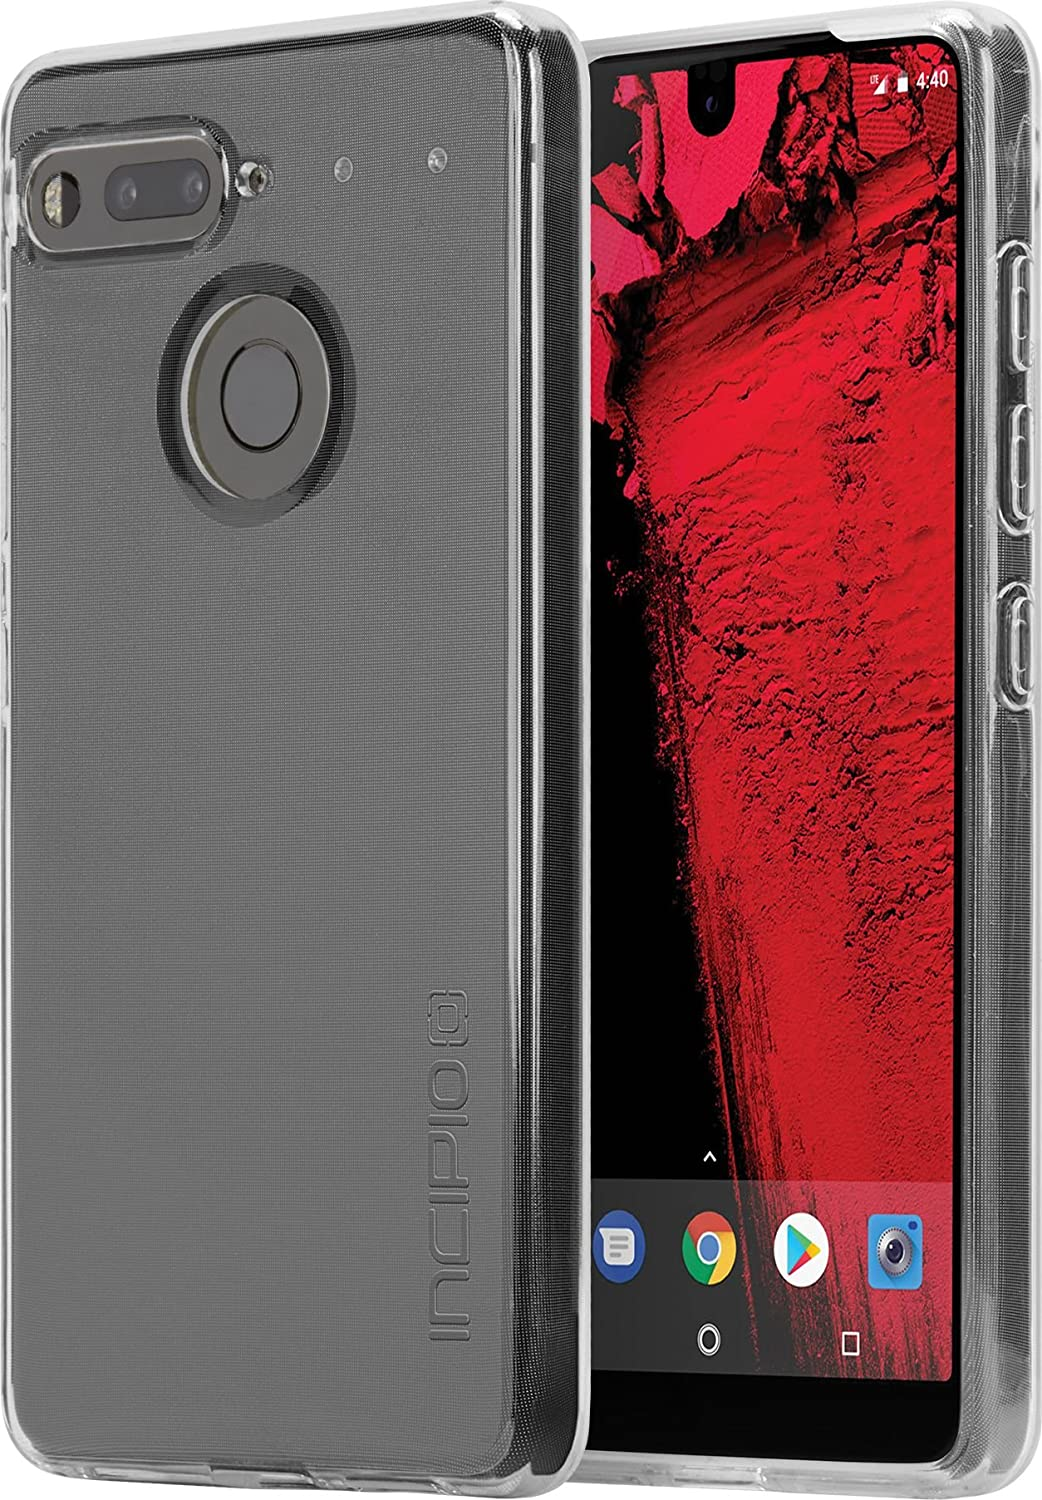 premium selection e6f92 53b00 Essential Phone Case, Incipio Essential PH-1 Case NGP Pure Shockproof Ultra  Thin Slim Clear TPU Polymer Shock-Absorbing Cover - Clear